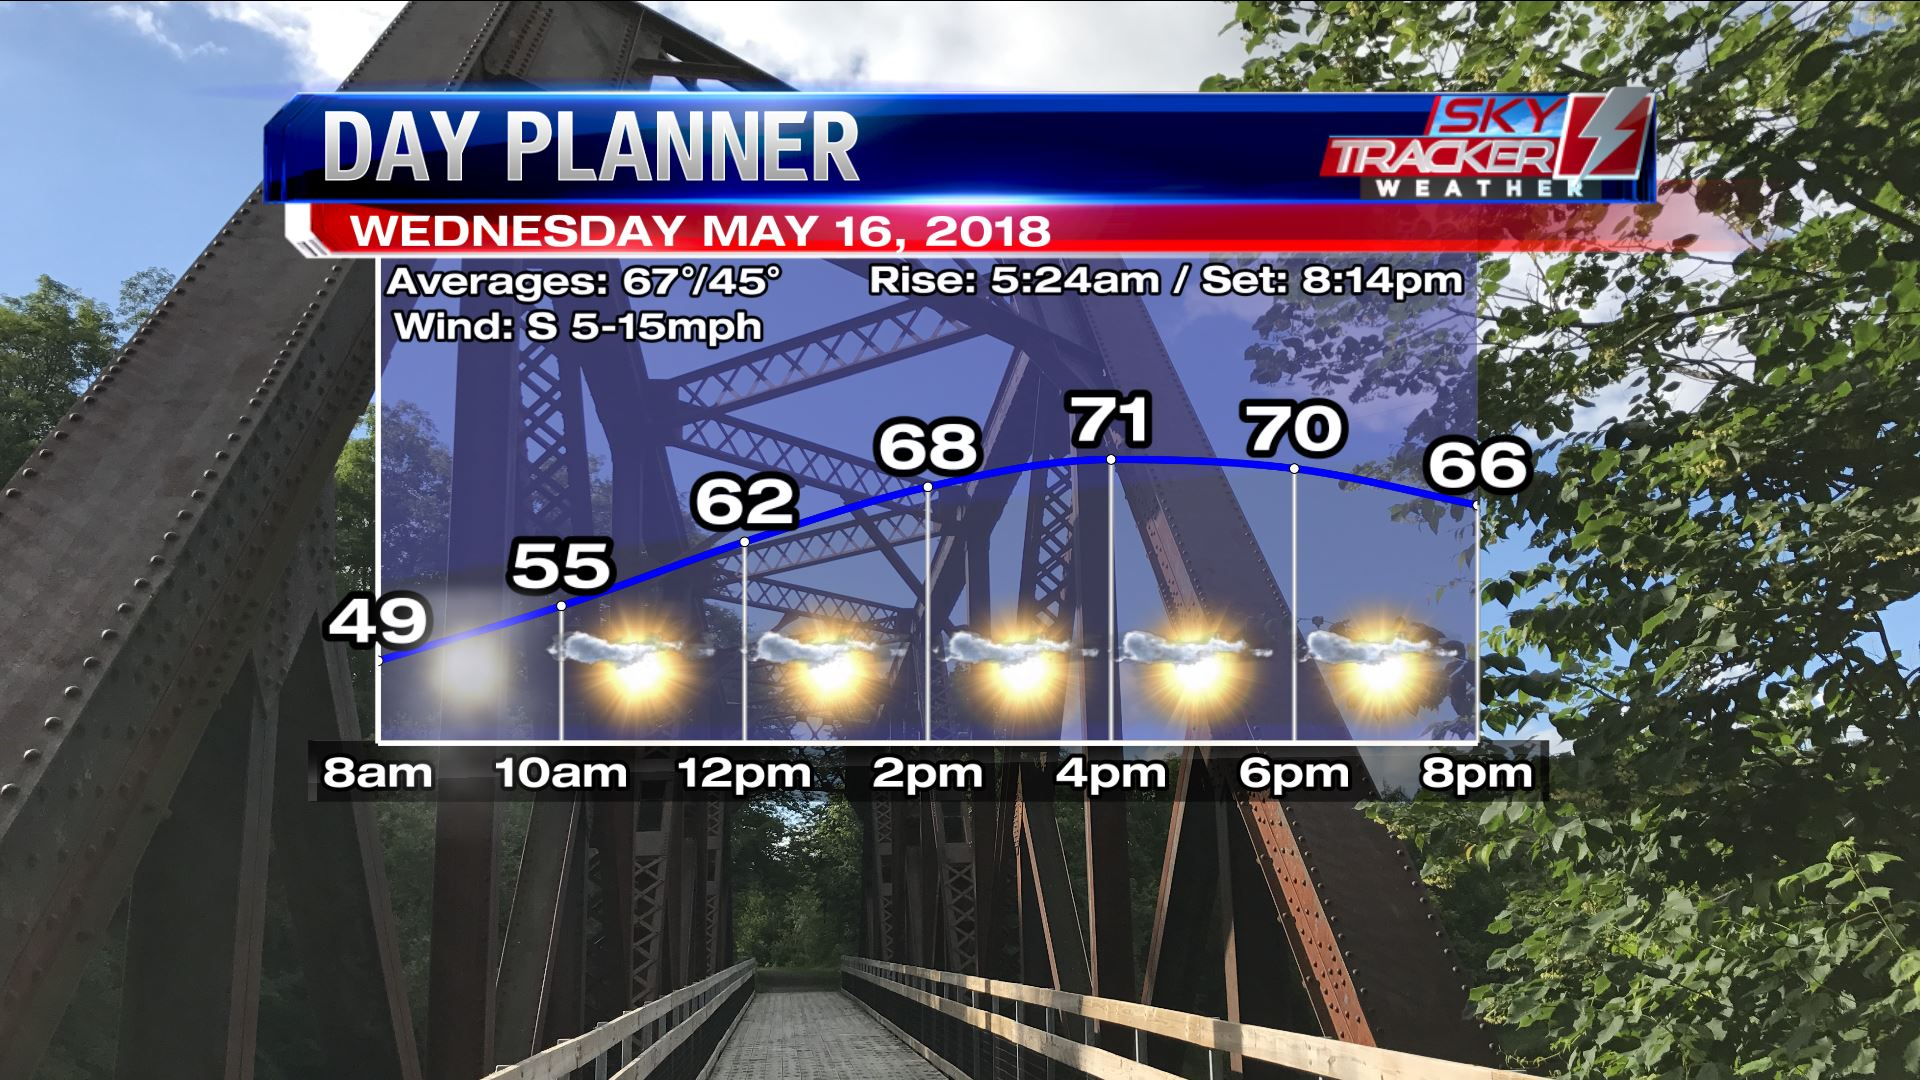 Planner for Wednesday May 16 2018